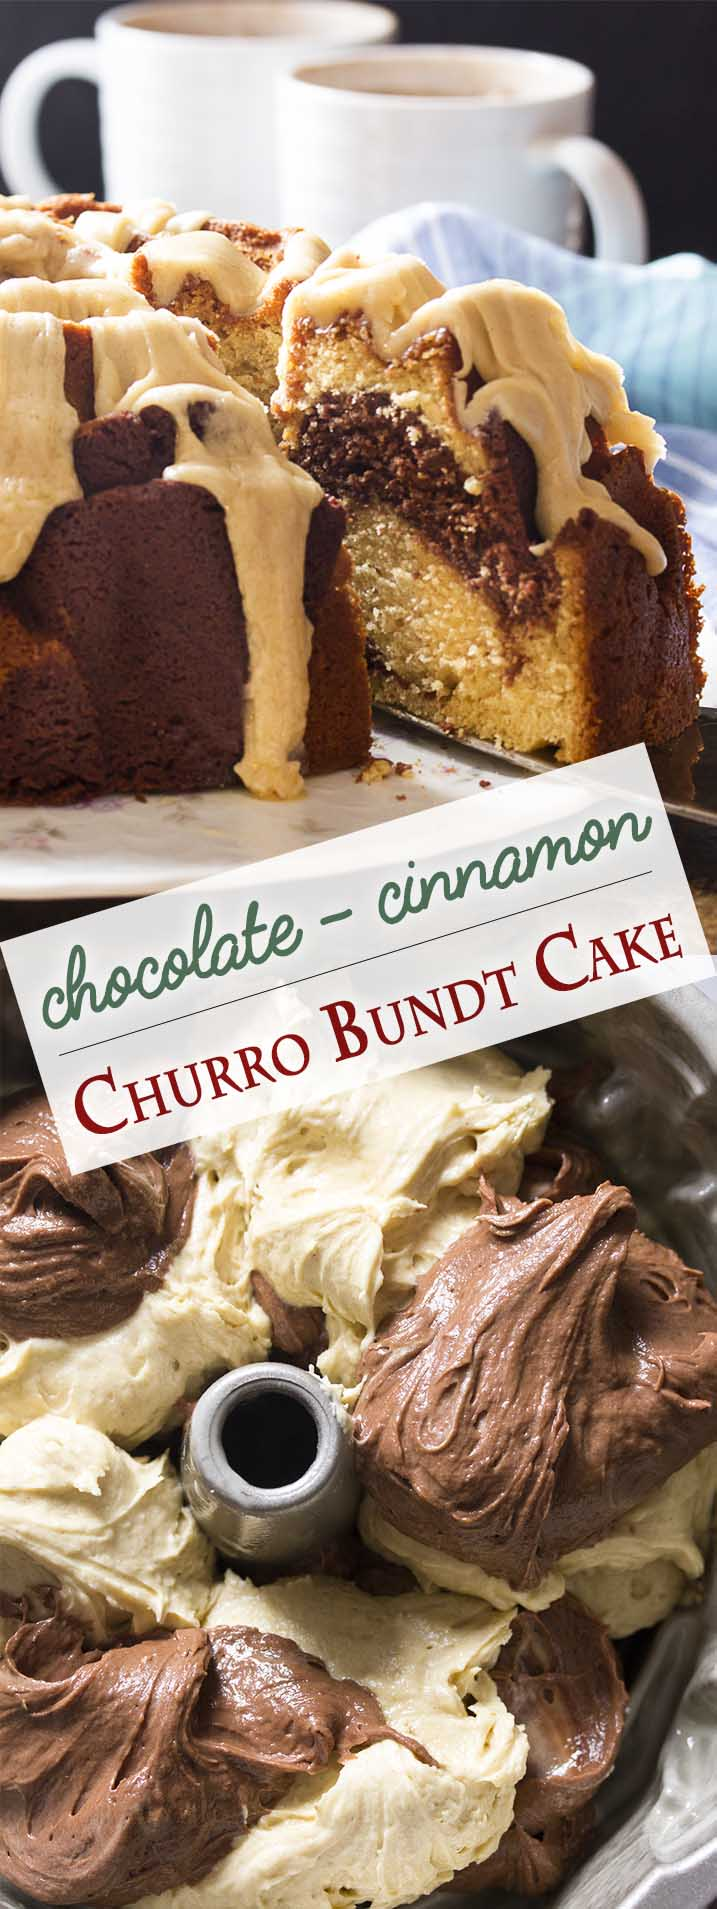 In this churro inspired dessert, sour cream cinnamon bundt cake is swirled with chocolate for a moist and tender marble cake. Wonderful as is, but even better when topped with a brown butter cinnamon icing! | justalittlebitofbacon.com #bundtcake #cinnamoncake #chocolatecake #bundt #churrocake